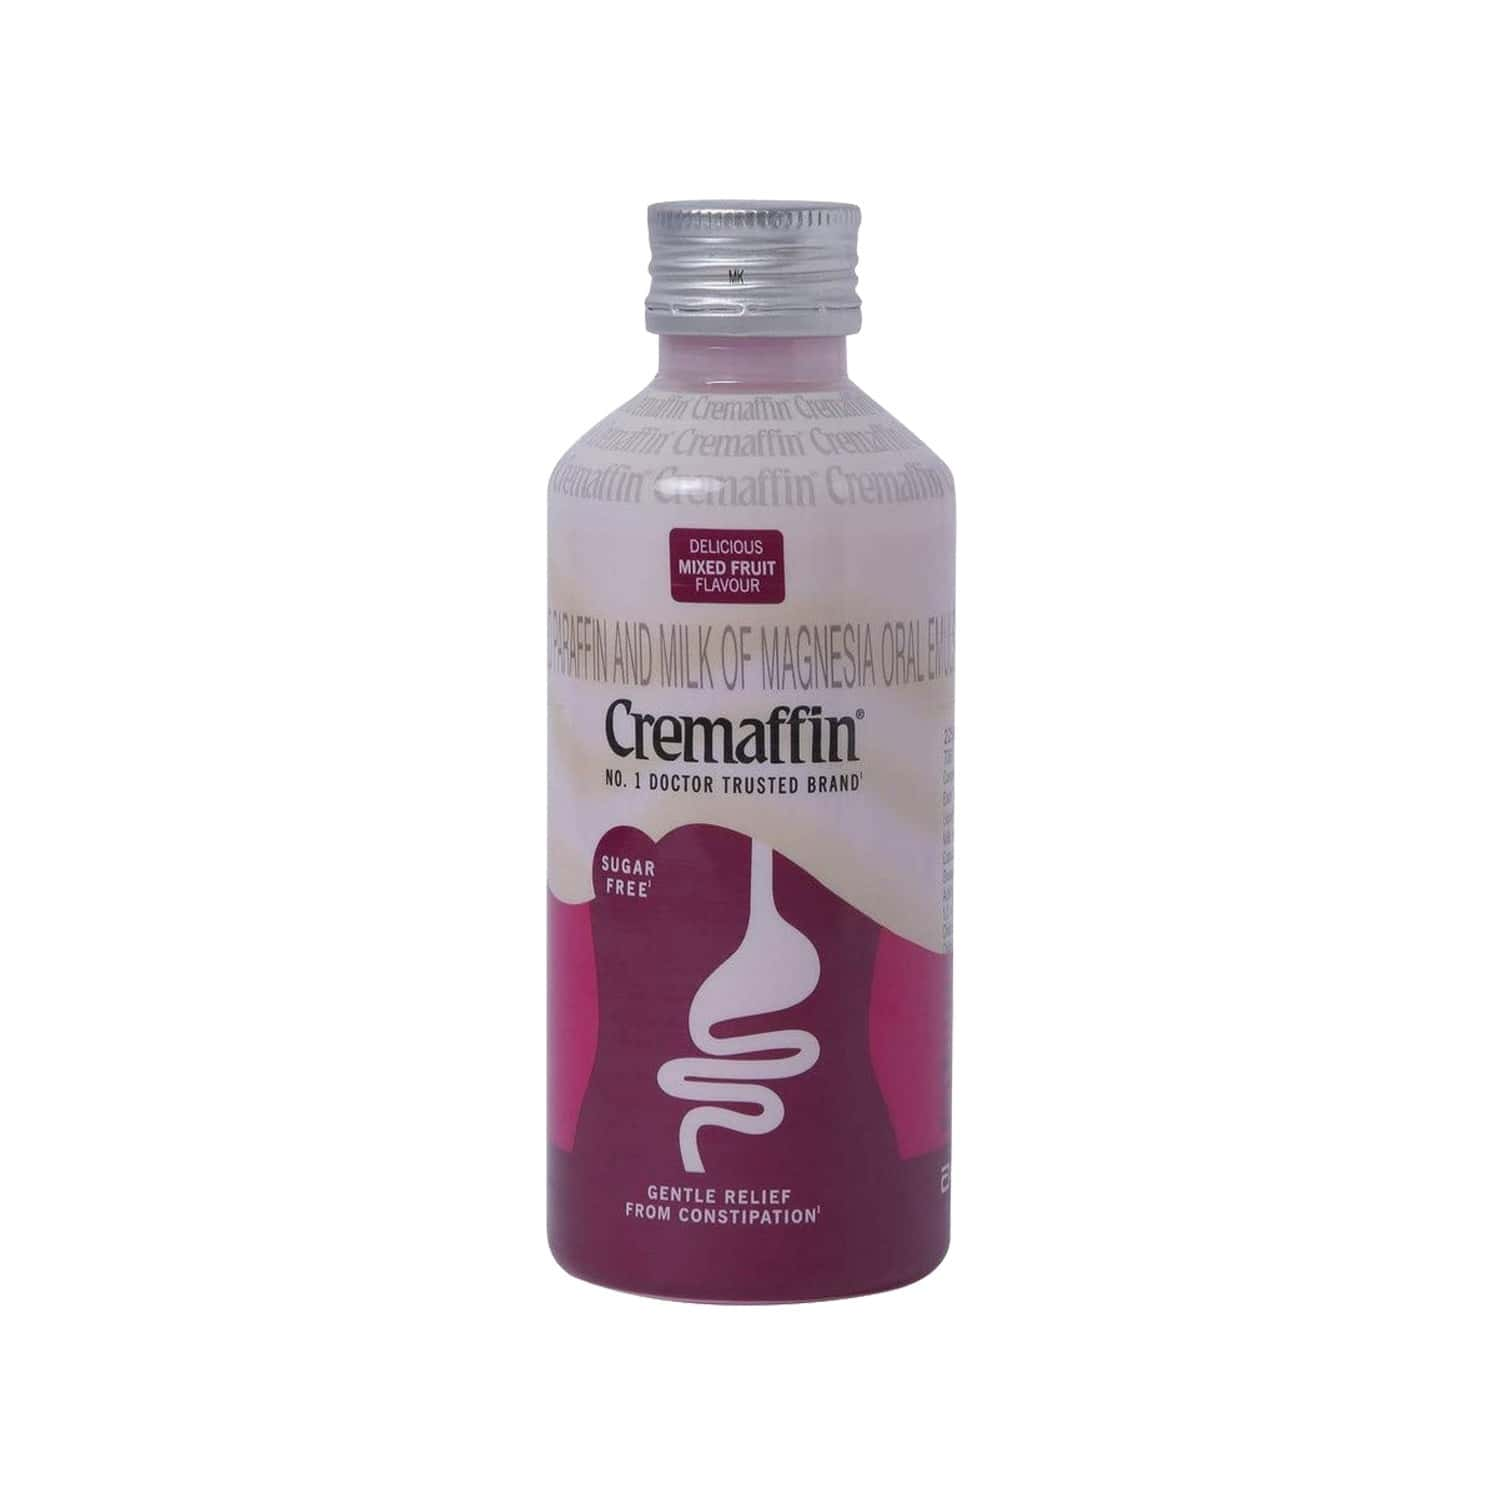 Cremaffin Mixed Fruit Sugar Free Emulsion Bottle Of 100 Ml